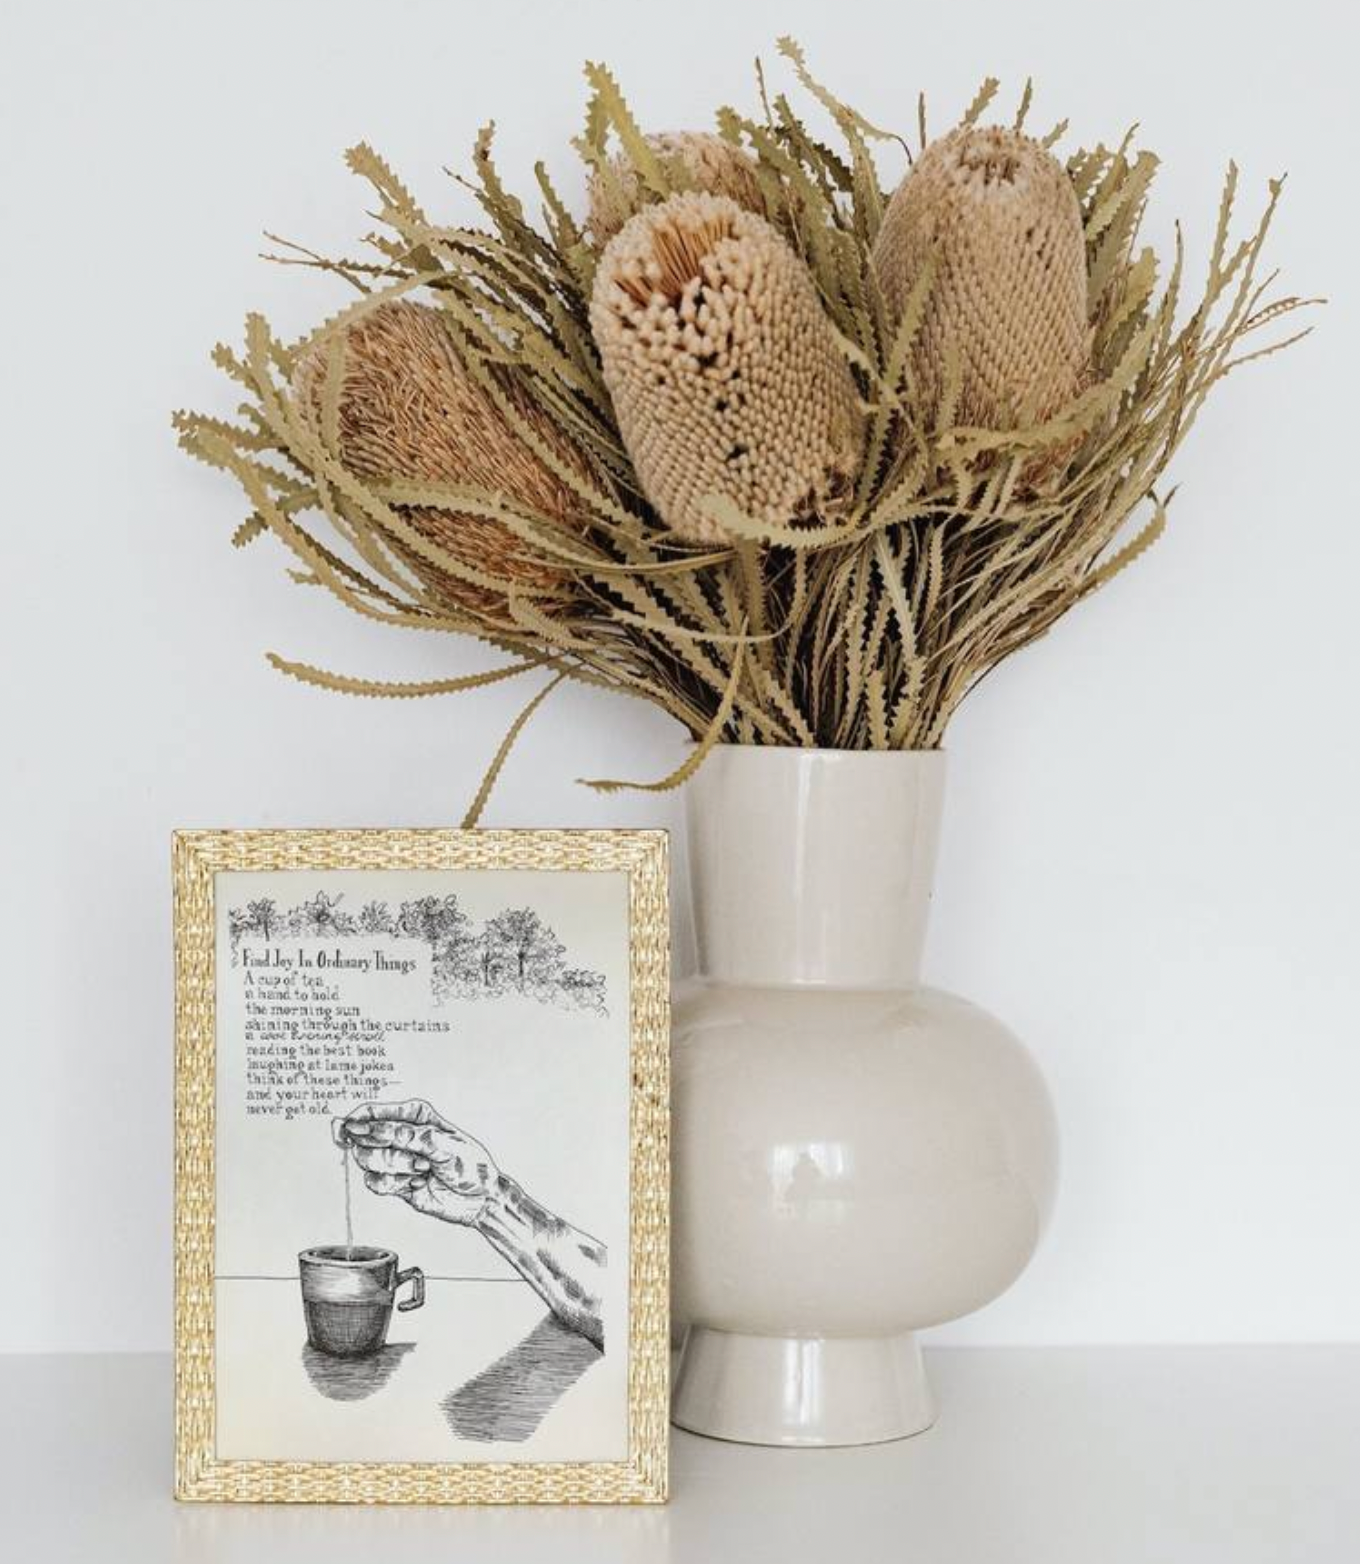 A photo of the mock-up of the artwork, Find Joy In Ordinary Things Illustrated Poem in a muted gold, weaved frame, beside it is a light beige coloured vase with dried flowers in autumn colours of golden yellow, light brown, and cream.